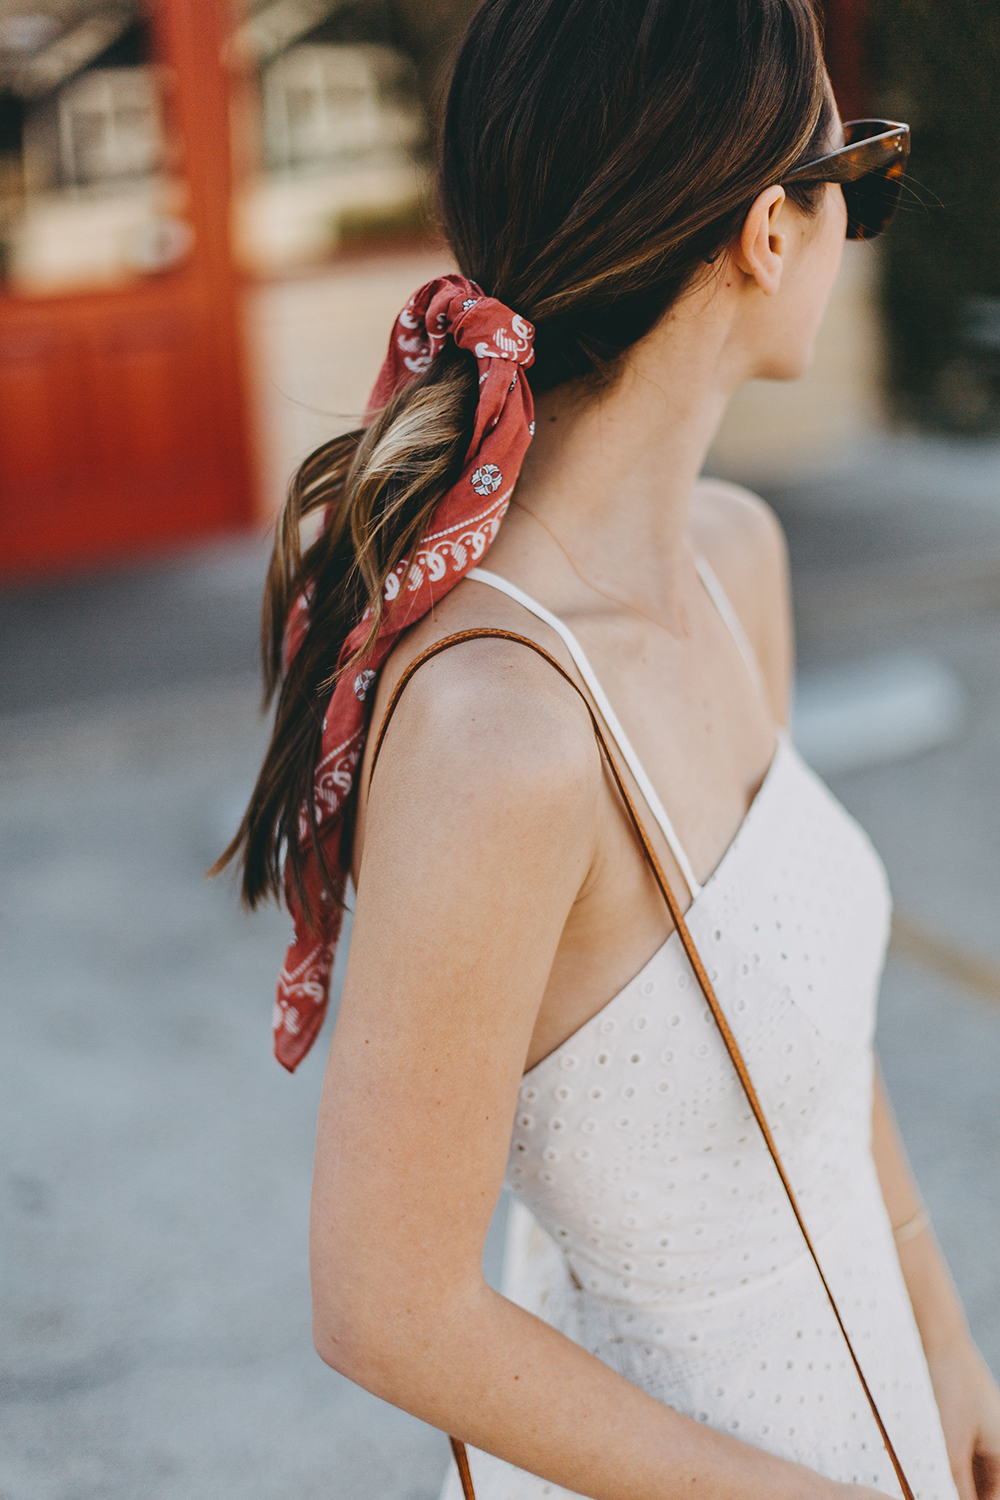 livvyland-blog-olivia-watson-urban-outfitters-eyelet-open-back-dress-madewell-hair-bandana-scarf-spring-date-outfit-1